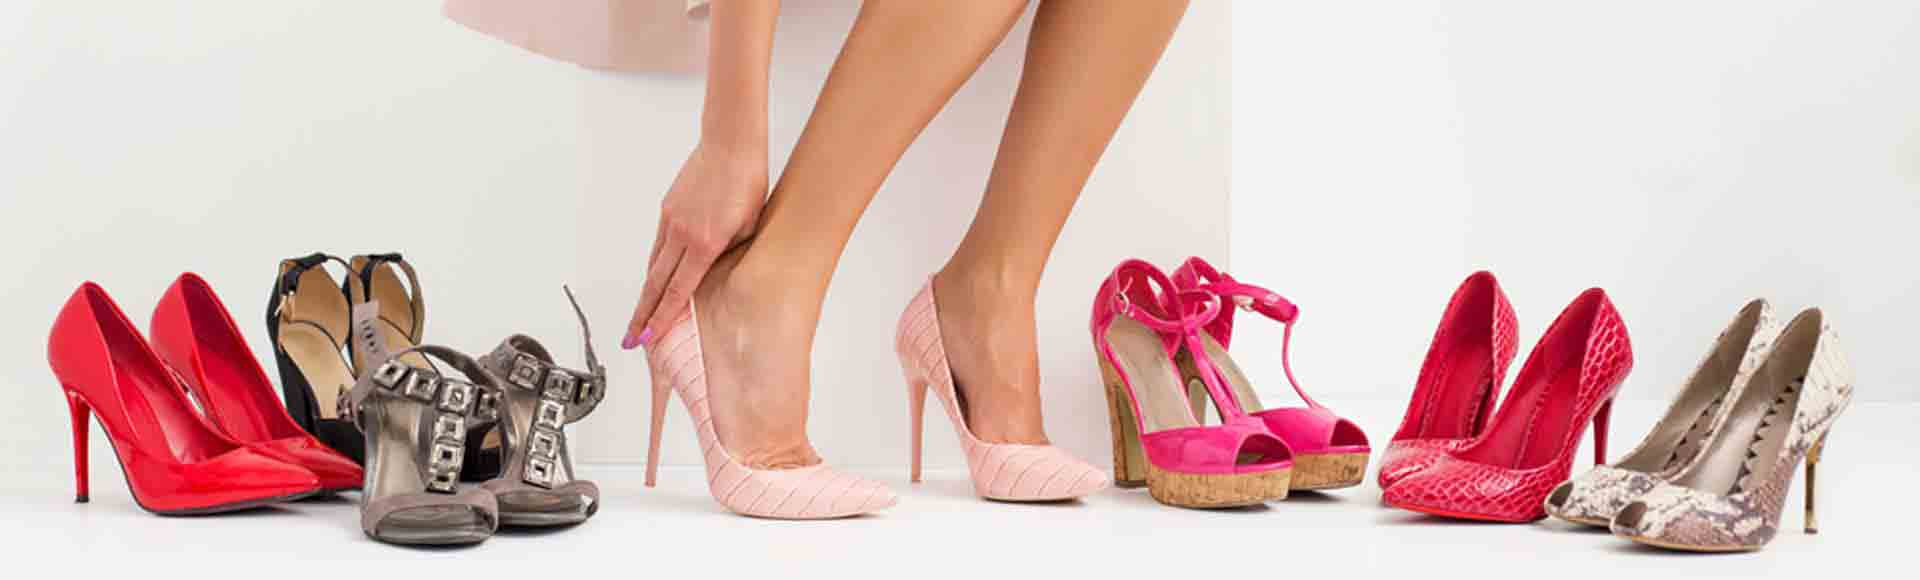 Aralco POS for Footwear